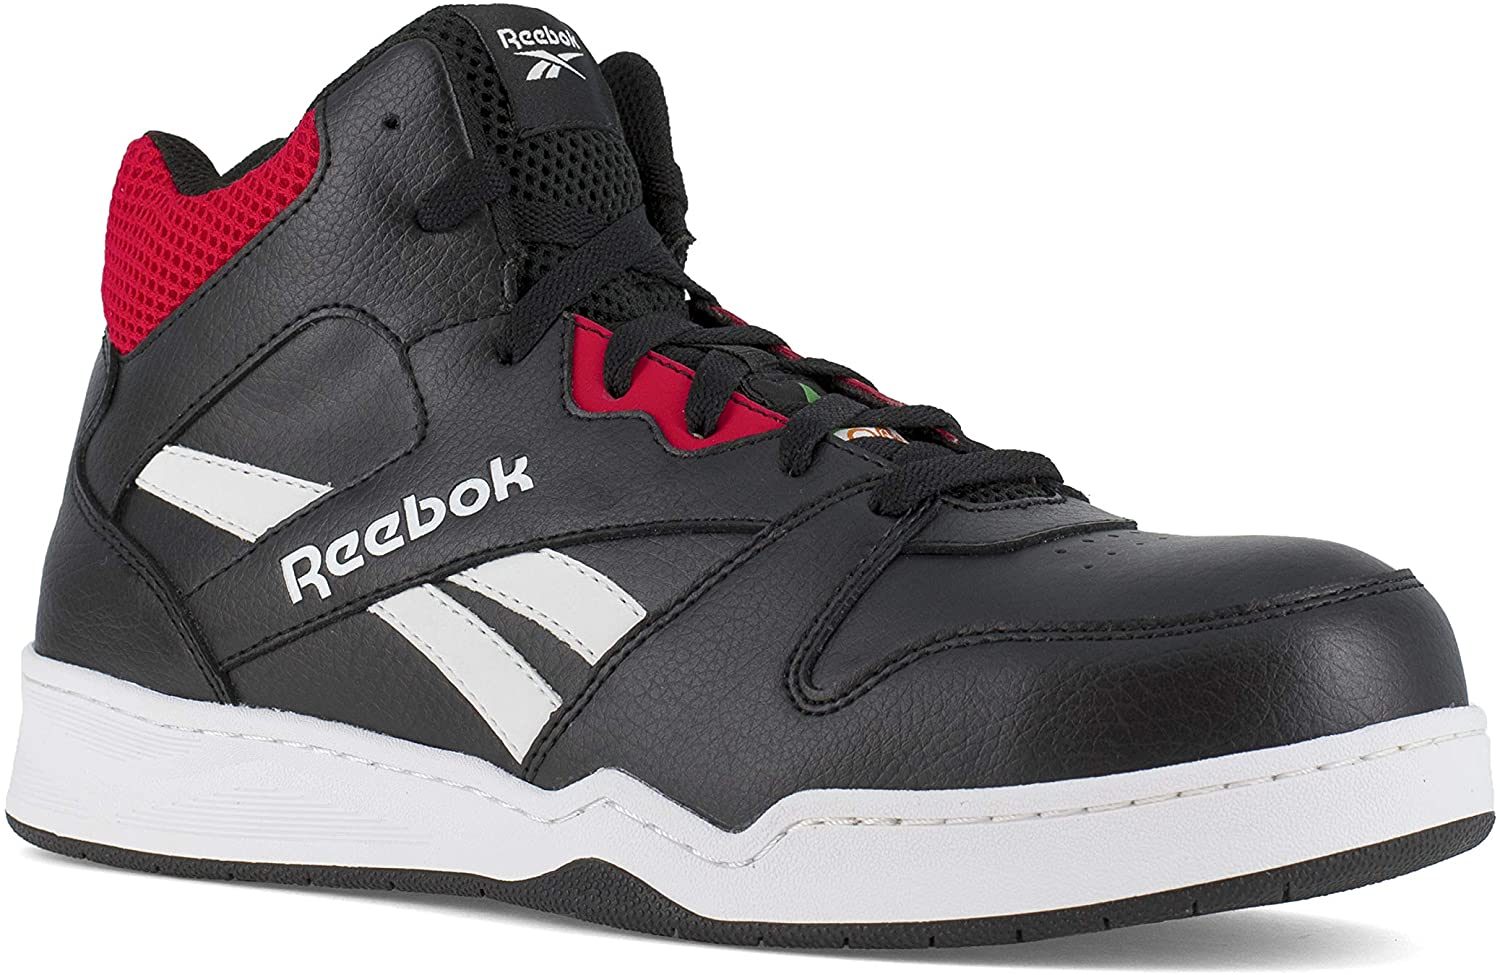 Reebok Men's Bb4500 Safety Toe Top Topics Popular brand in the world on TV Work Sneaker High